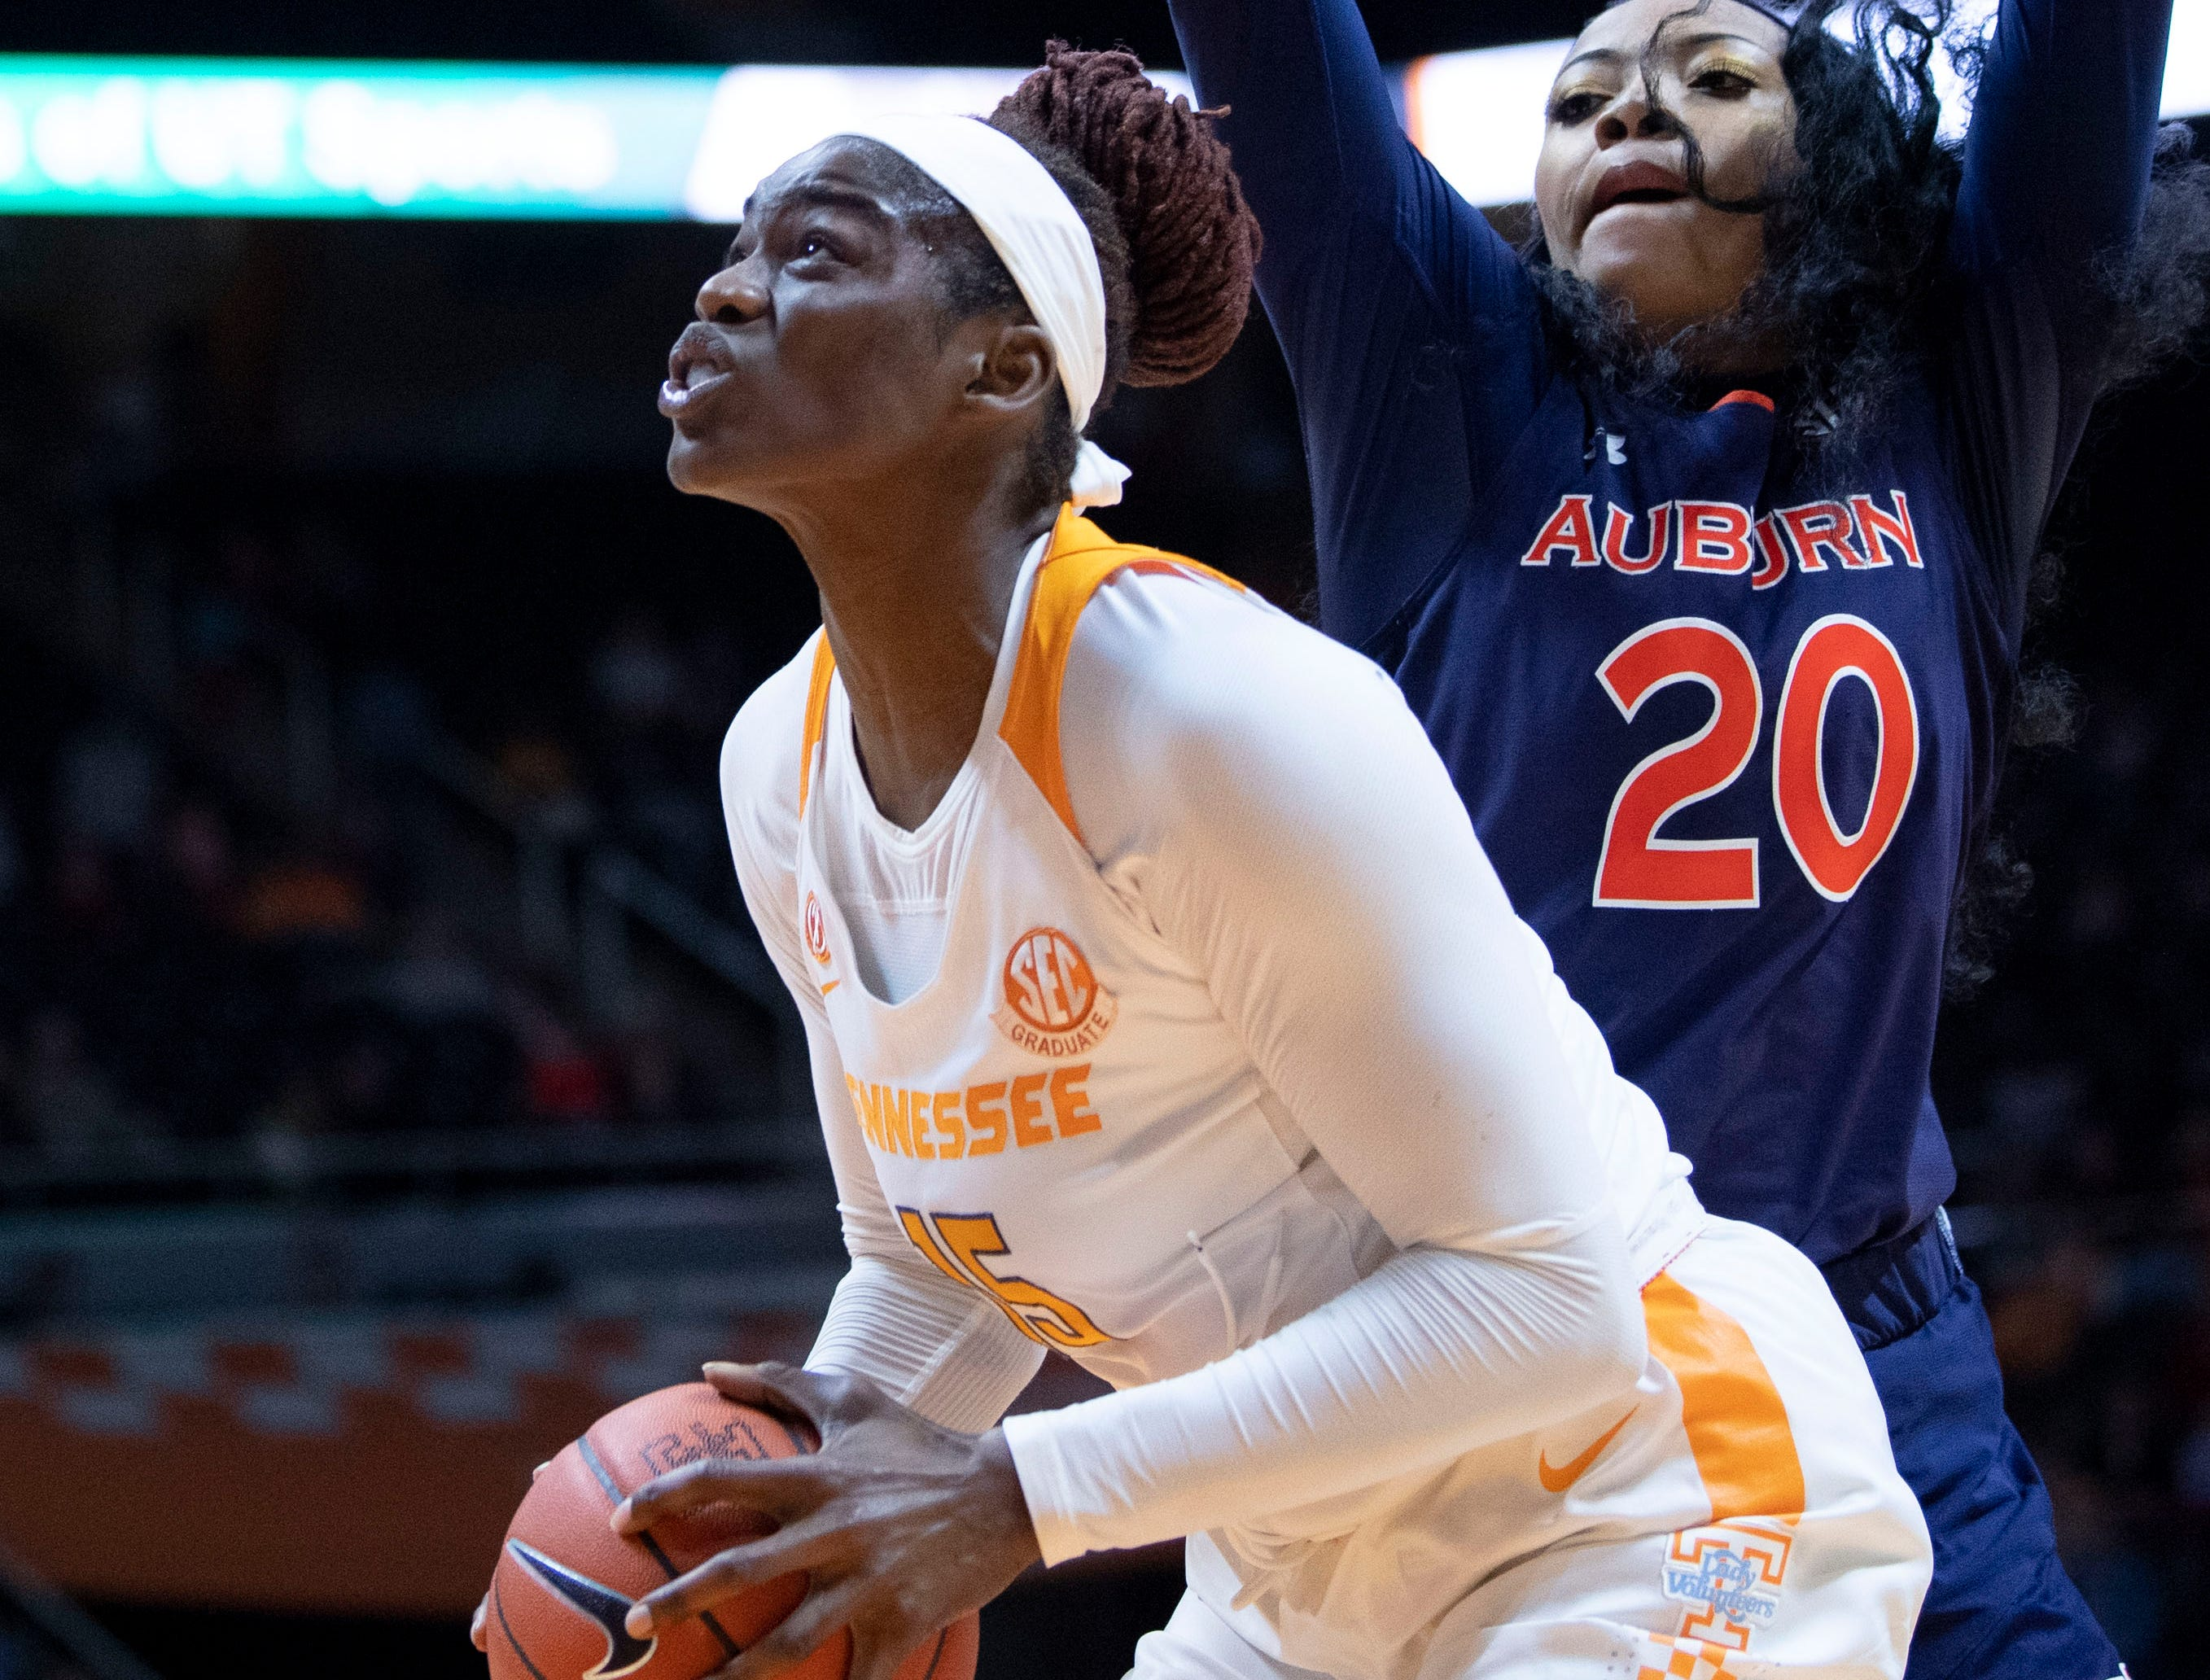 Tennessee's Cheridene Green (15) looks for the shot while guarded by Auburn's Unique Thompson (20) on Thursday, February 14, 2019.